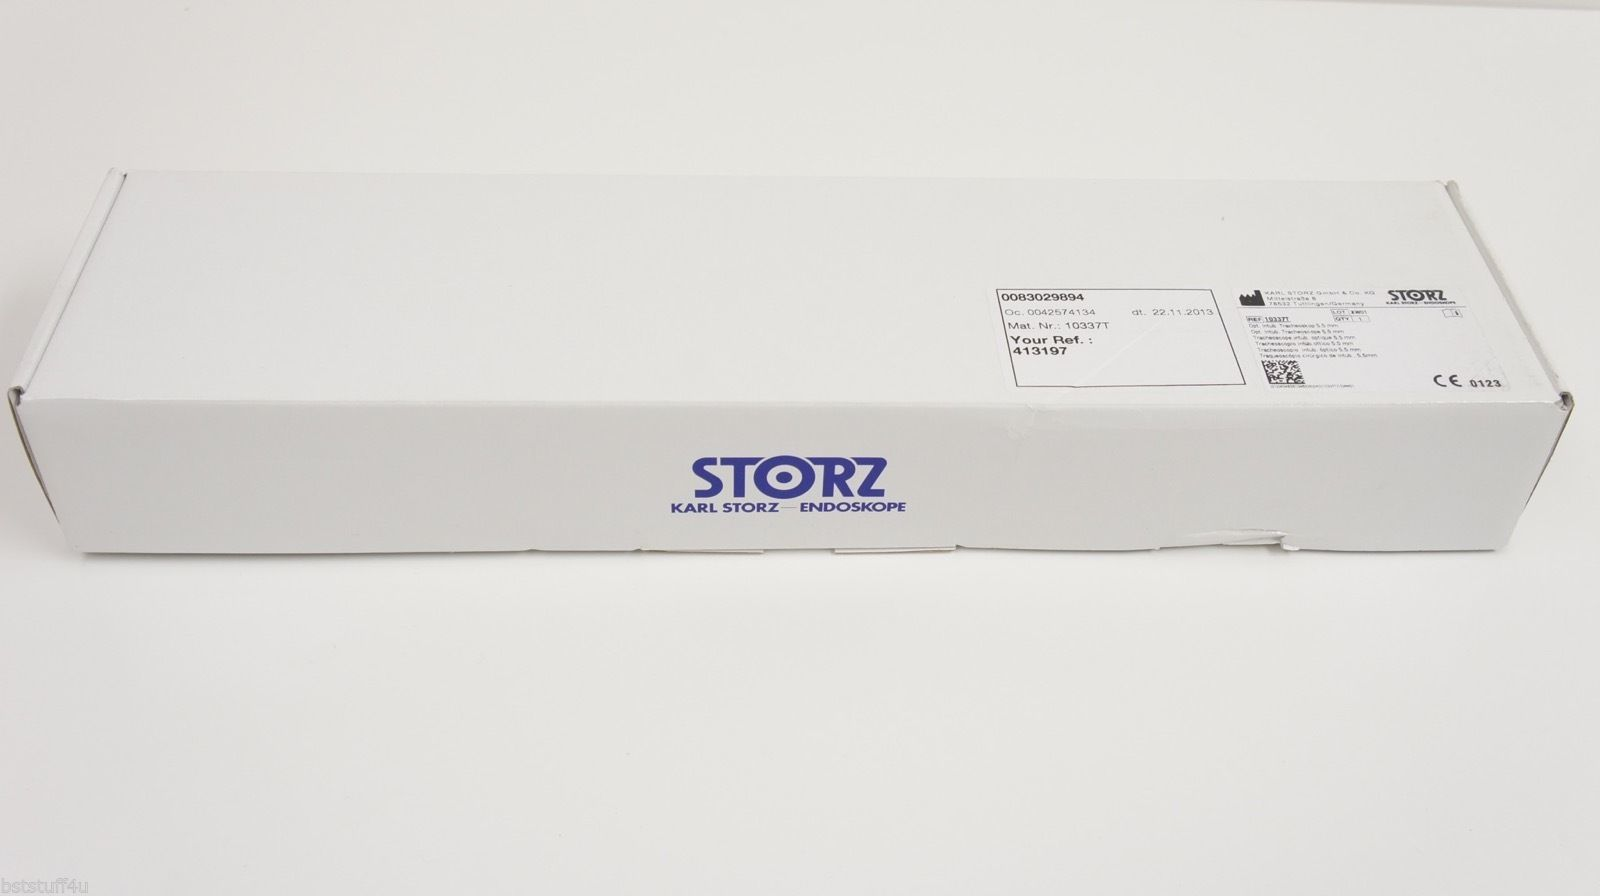 Details about Karl Storz 10337T Groningen Model Optical Intubation  Tracheoscope